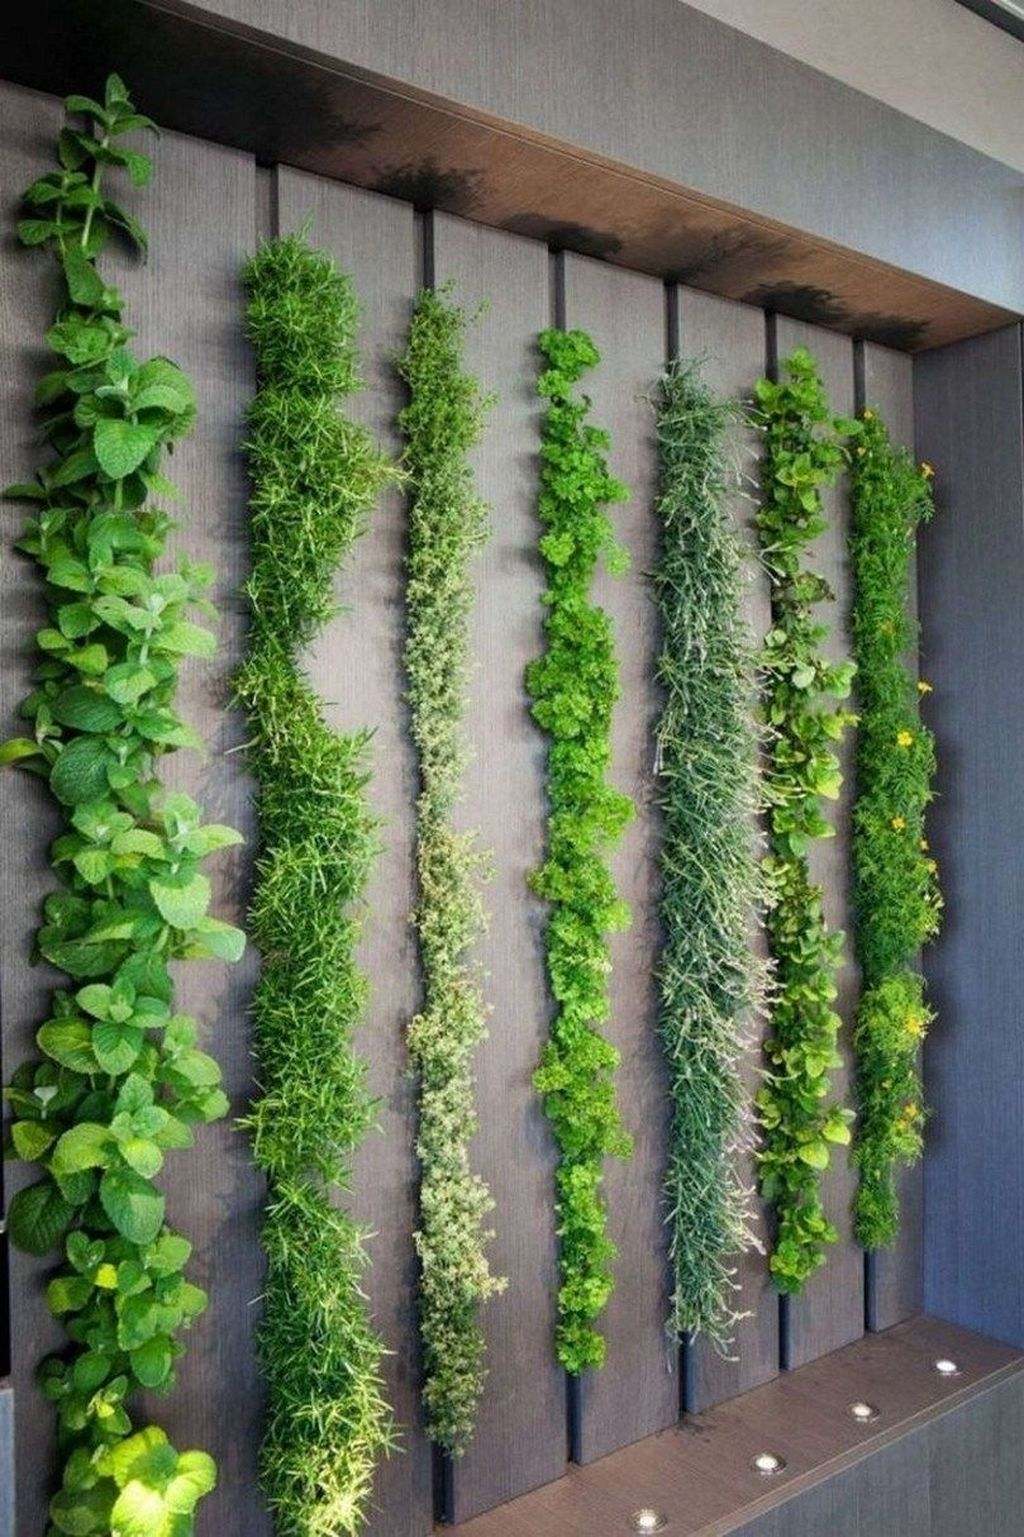 20+ #Chic #Herb #Garden #Design #And #Remodel #Ideas #To #Try #Right #Now